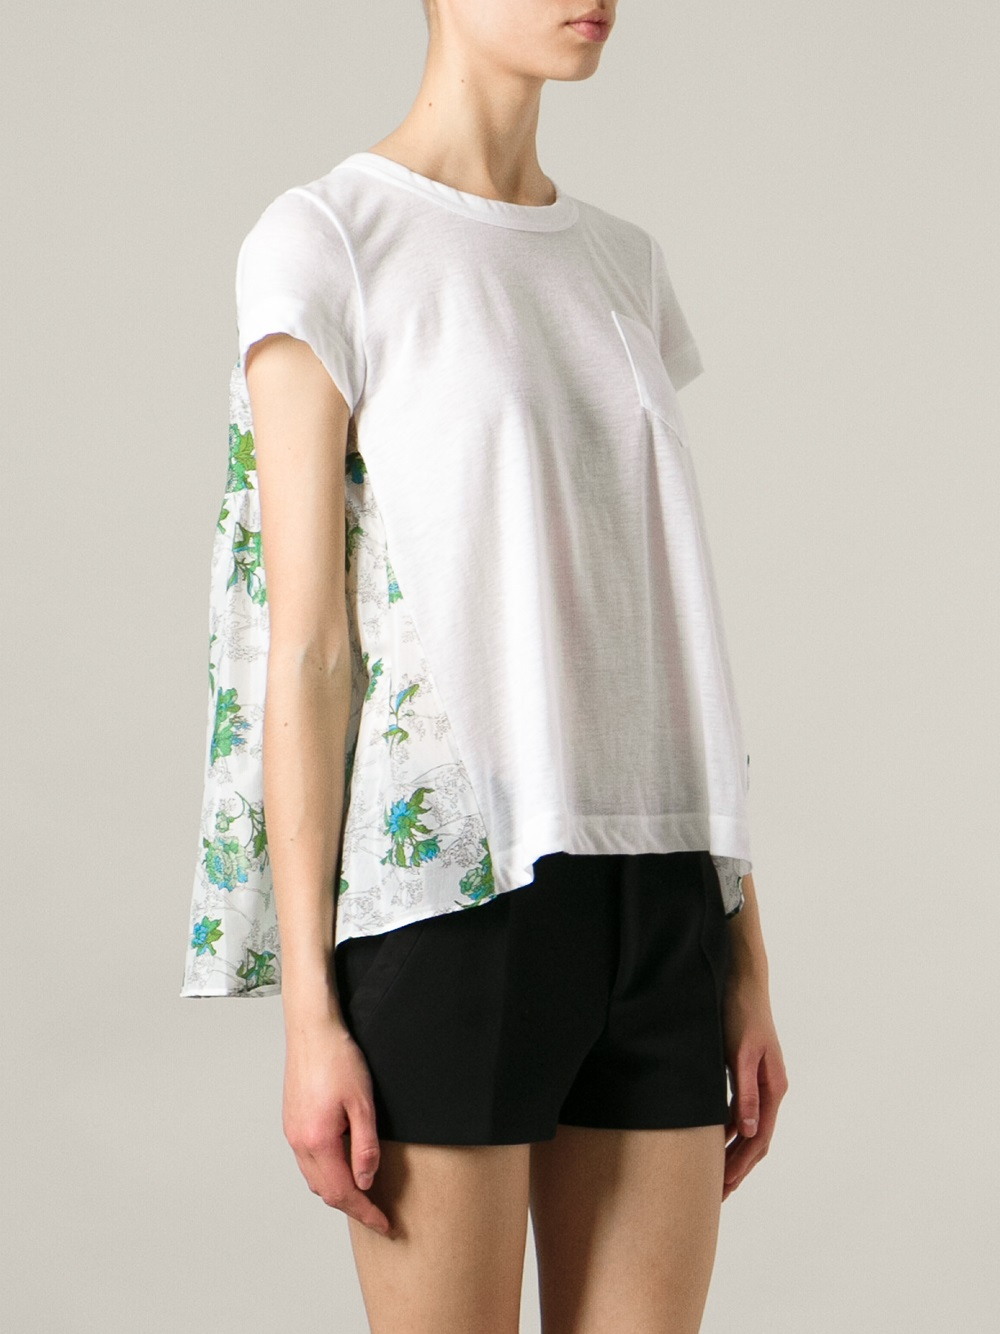 Sacai printed pleated back T-shirt Buy Cheap With Paypal 3a3HI